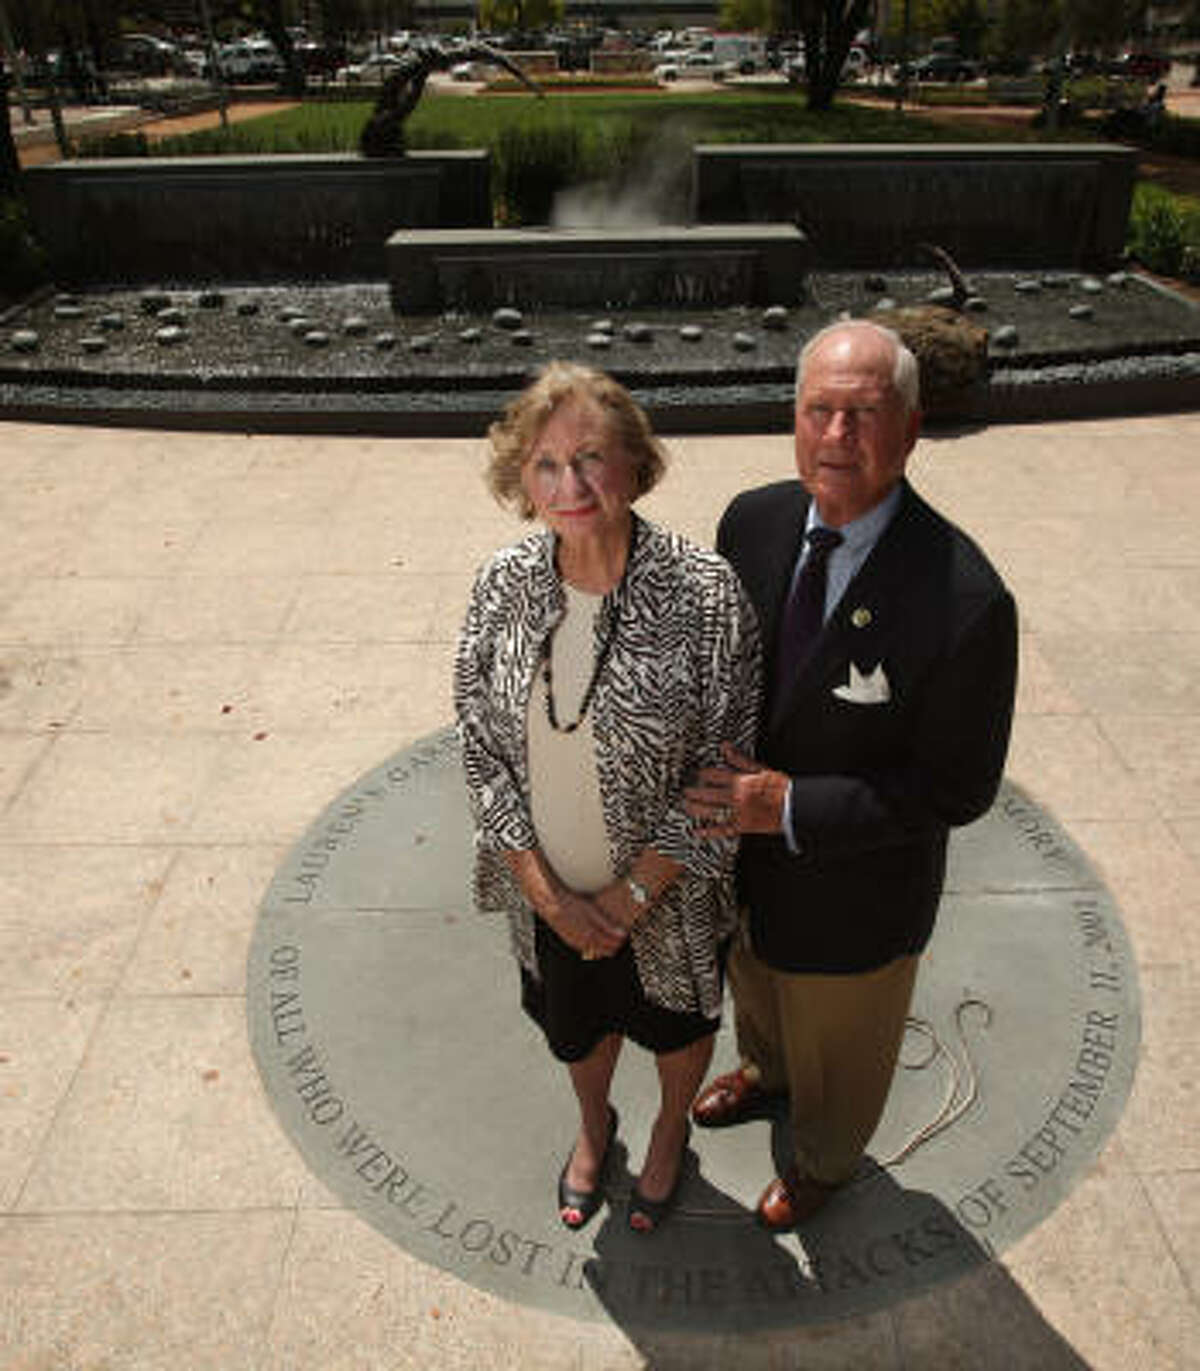 Barbara and Larry Catuzzi on Friday toured the garden at Market Square Park named in honor of their daughter, Lauren Catuzzi Grandcolas, who died aboard United Airlines Flight 93.